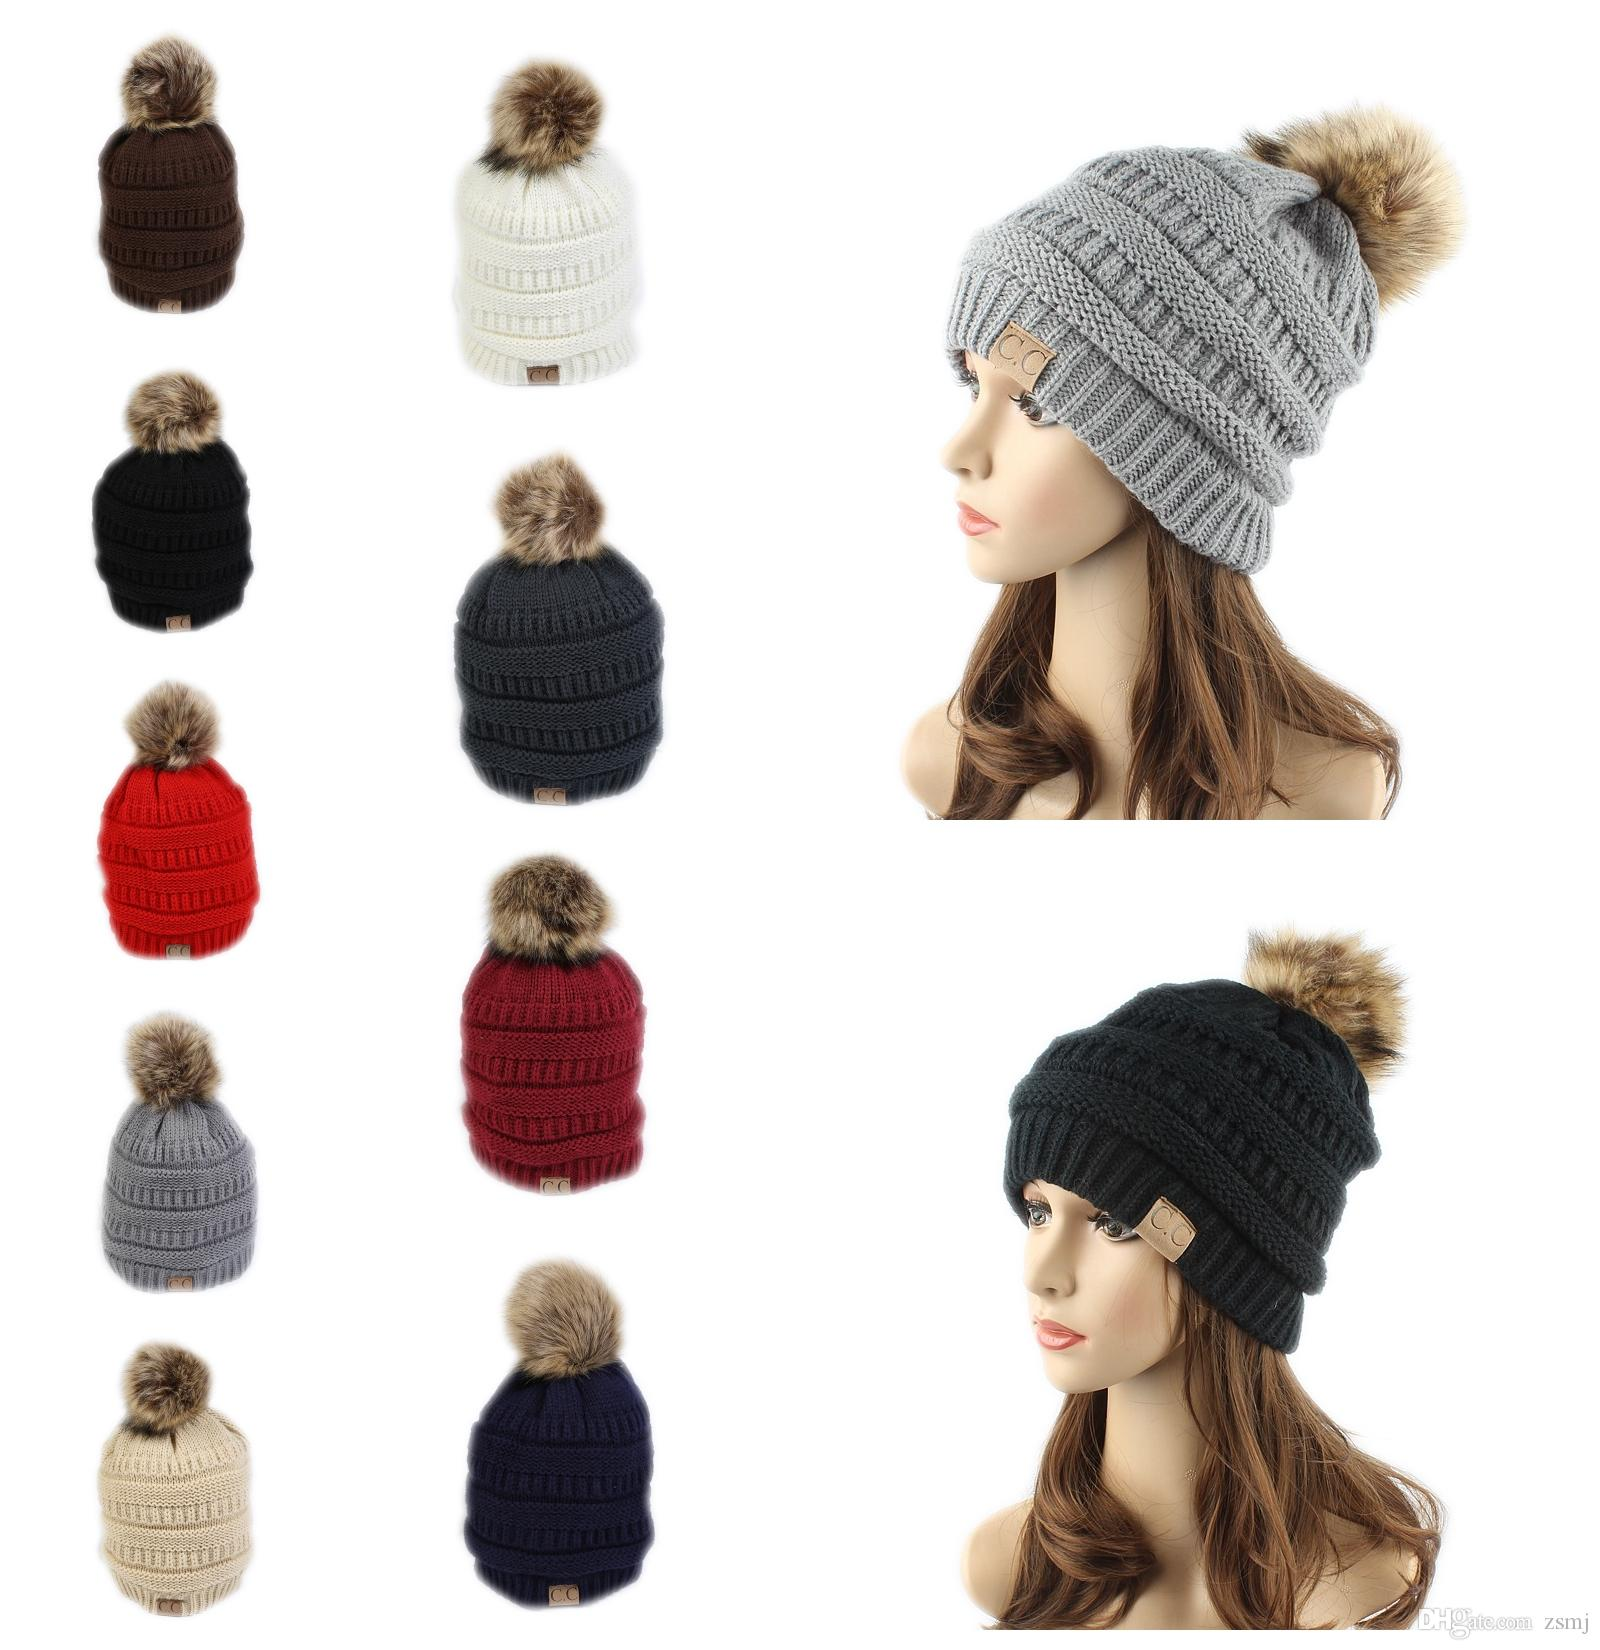 Cc Label Trendy Hats Winter Headware Knitted Fur Poms Beanie Cable Skull Caps  Beanie Outdoor Hats Beanie Kids Skull Caps From Zsmj 95635882be4e